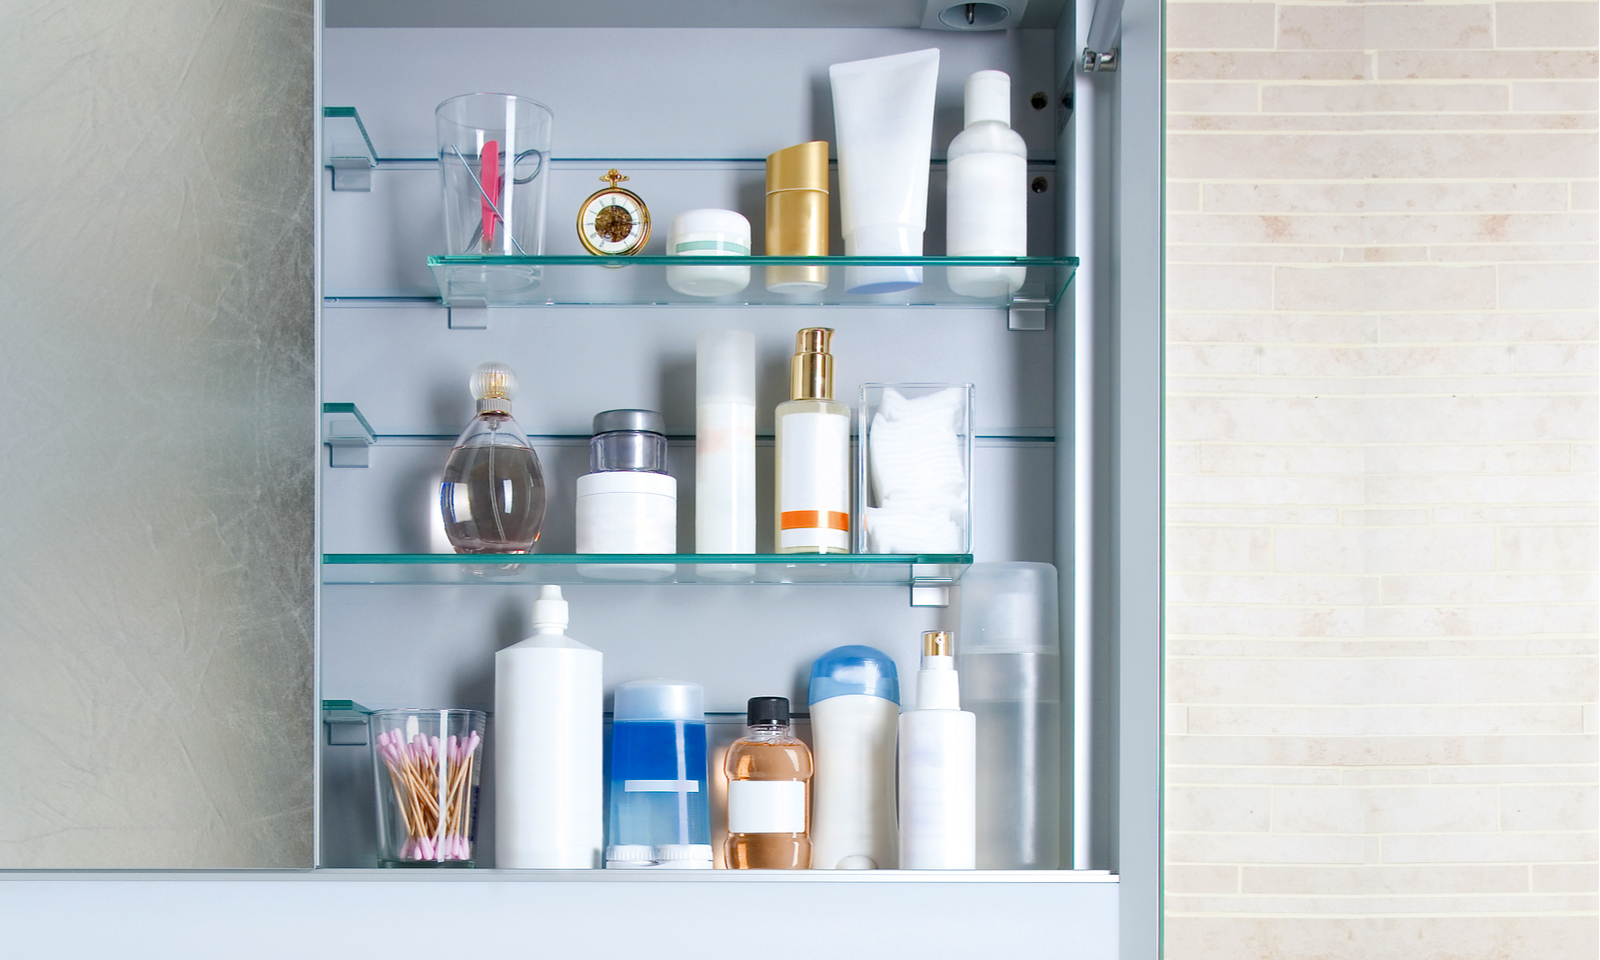 How to Care for Your Skincare What Goes in the Fridge, in the Cabinet, and Out of the Sun